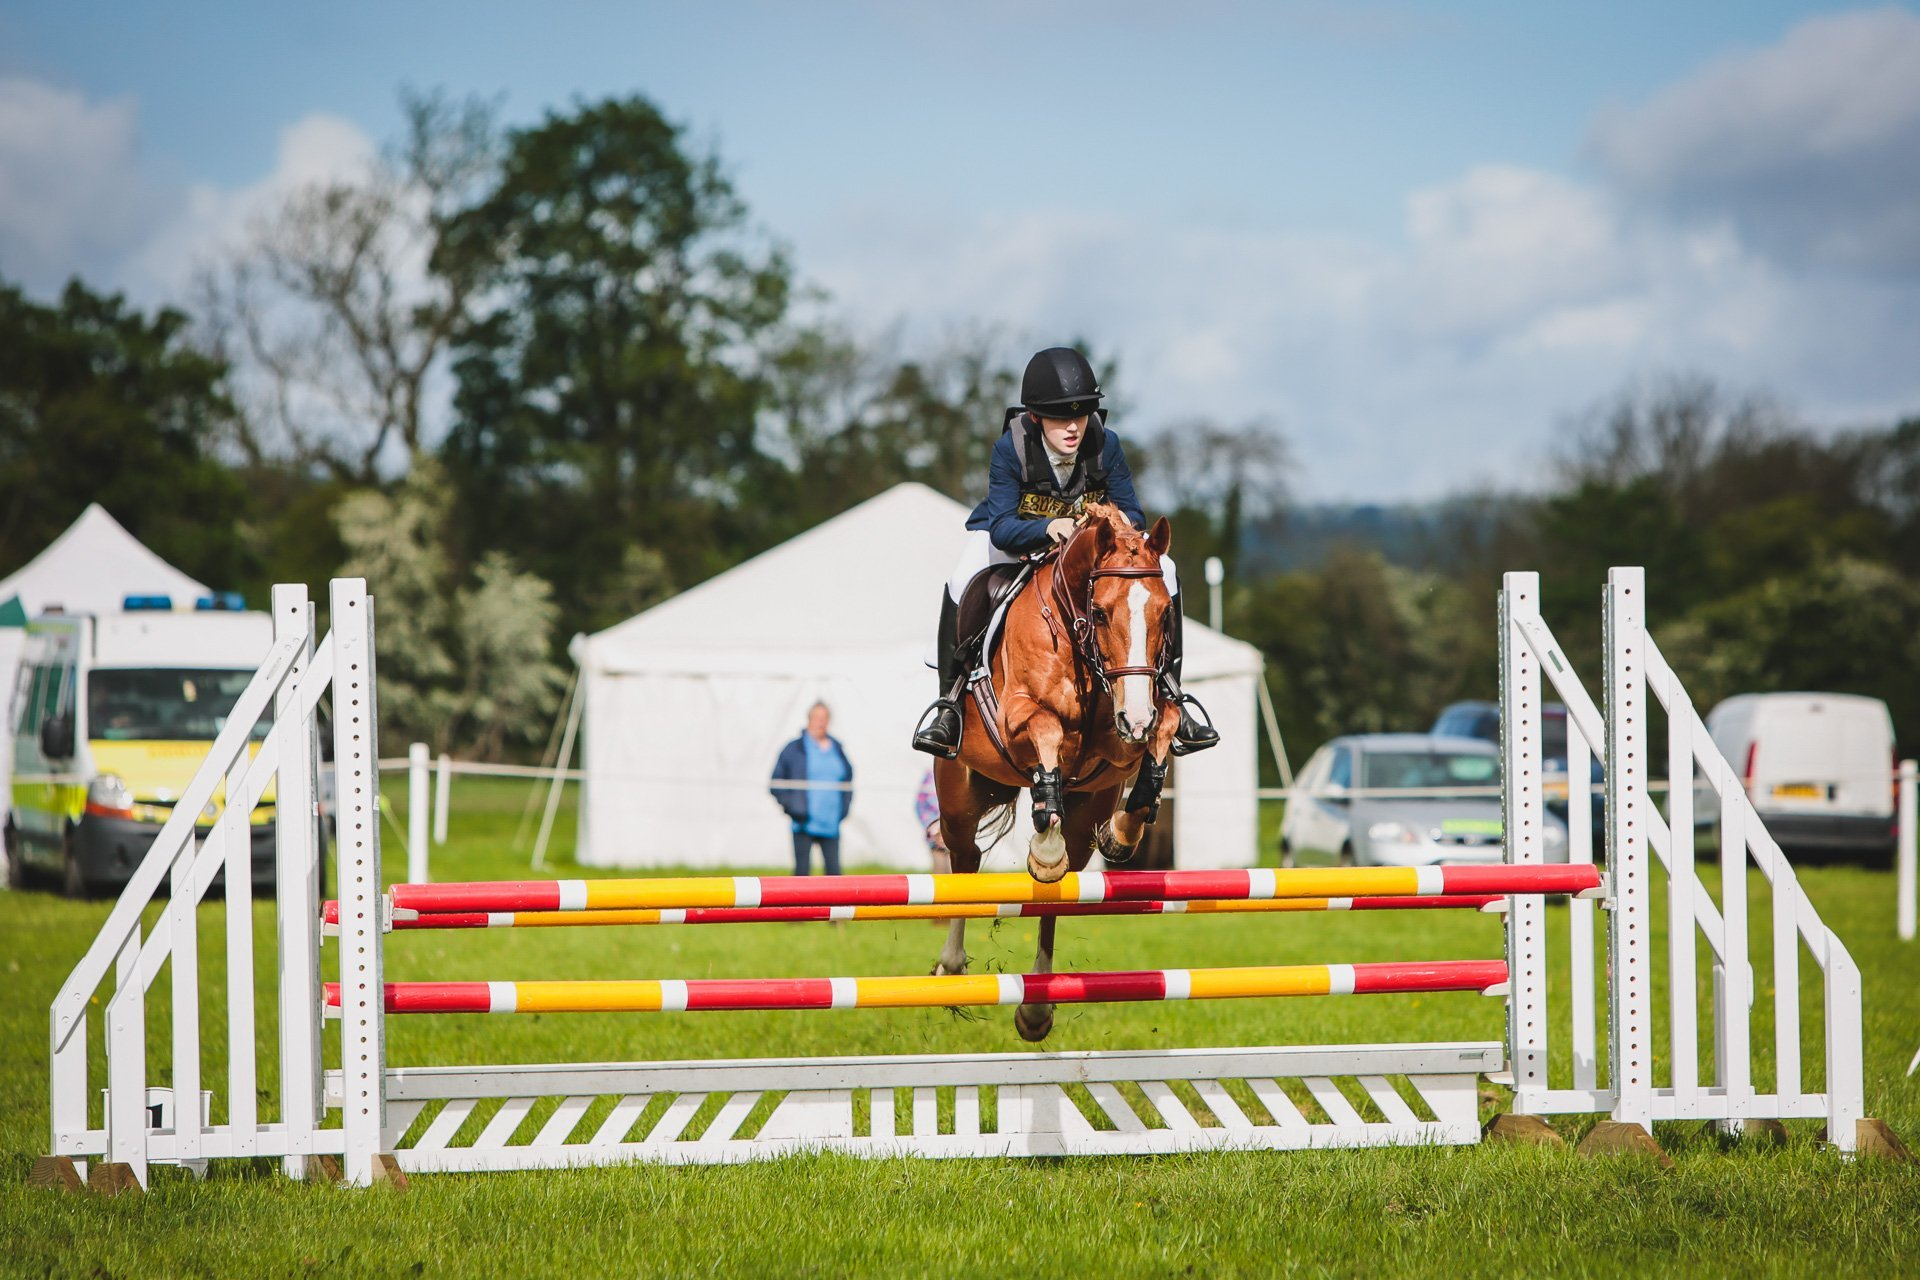 showjumping at Llanymynech horse trials